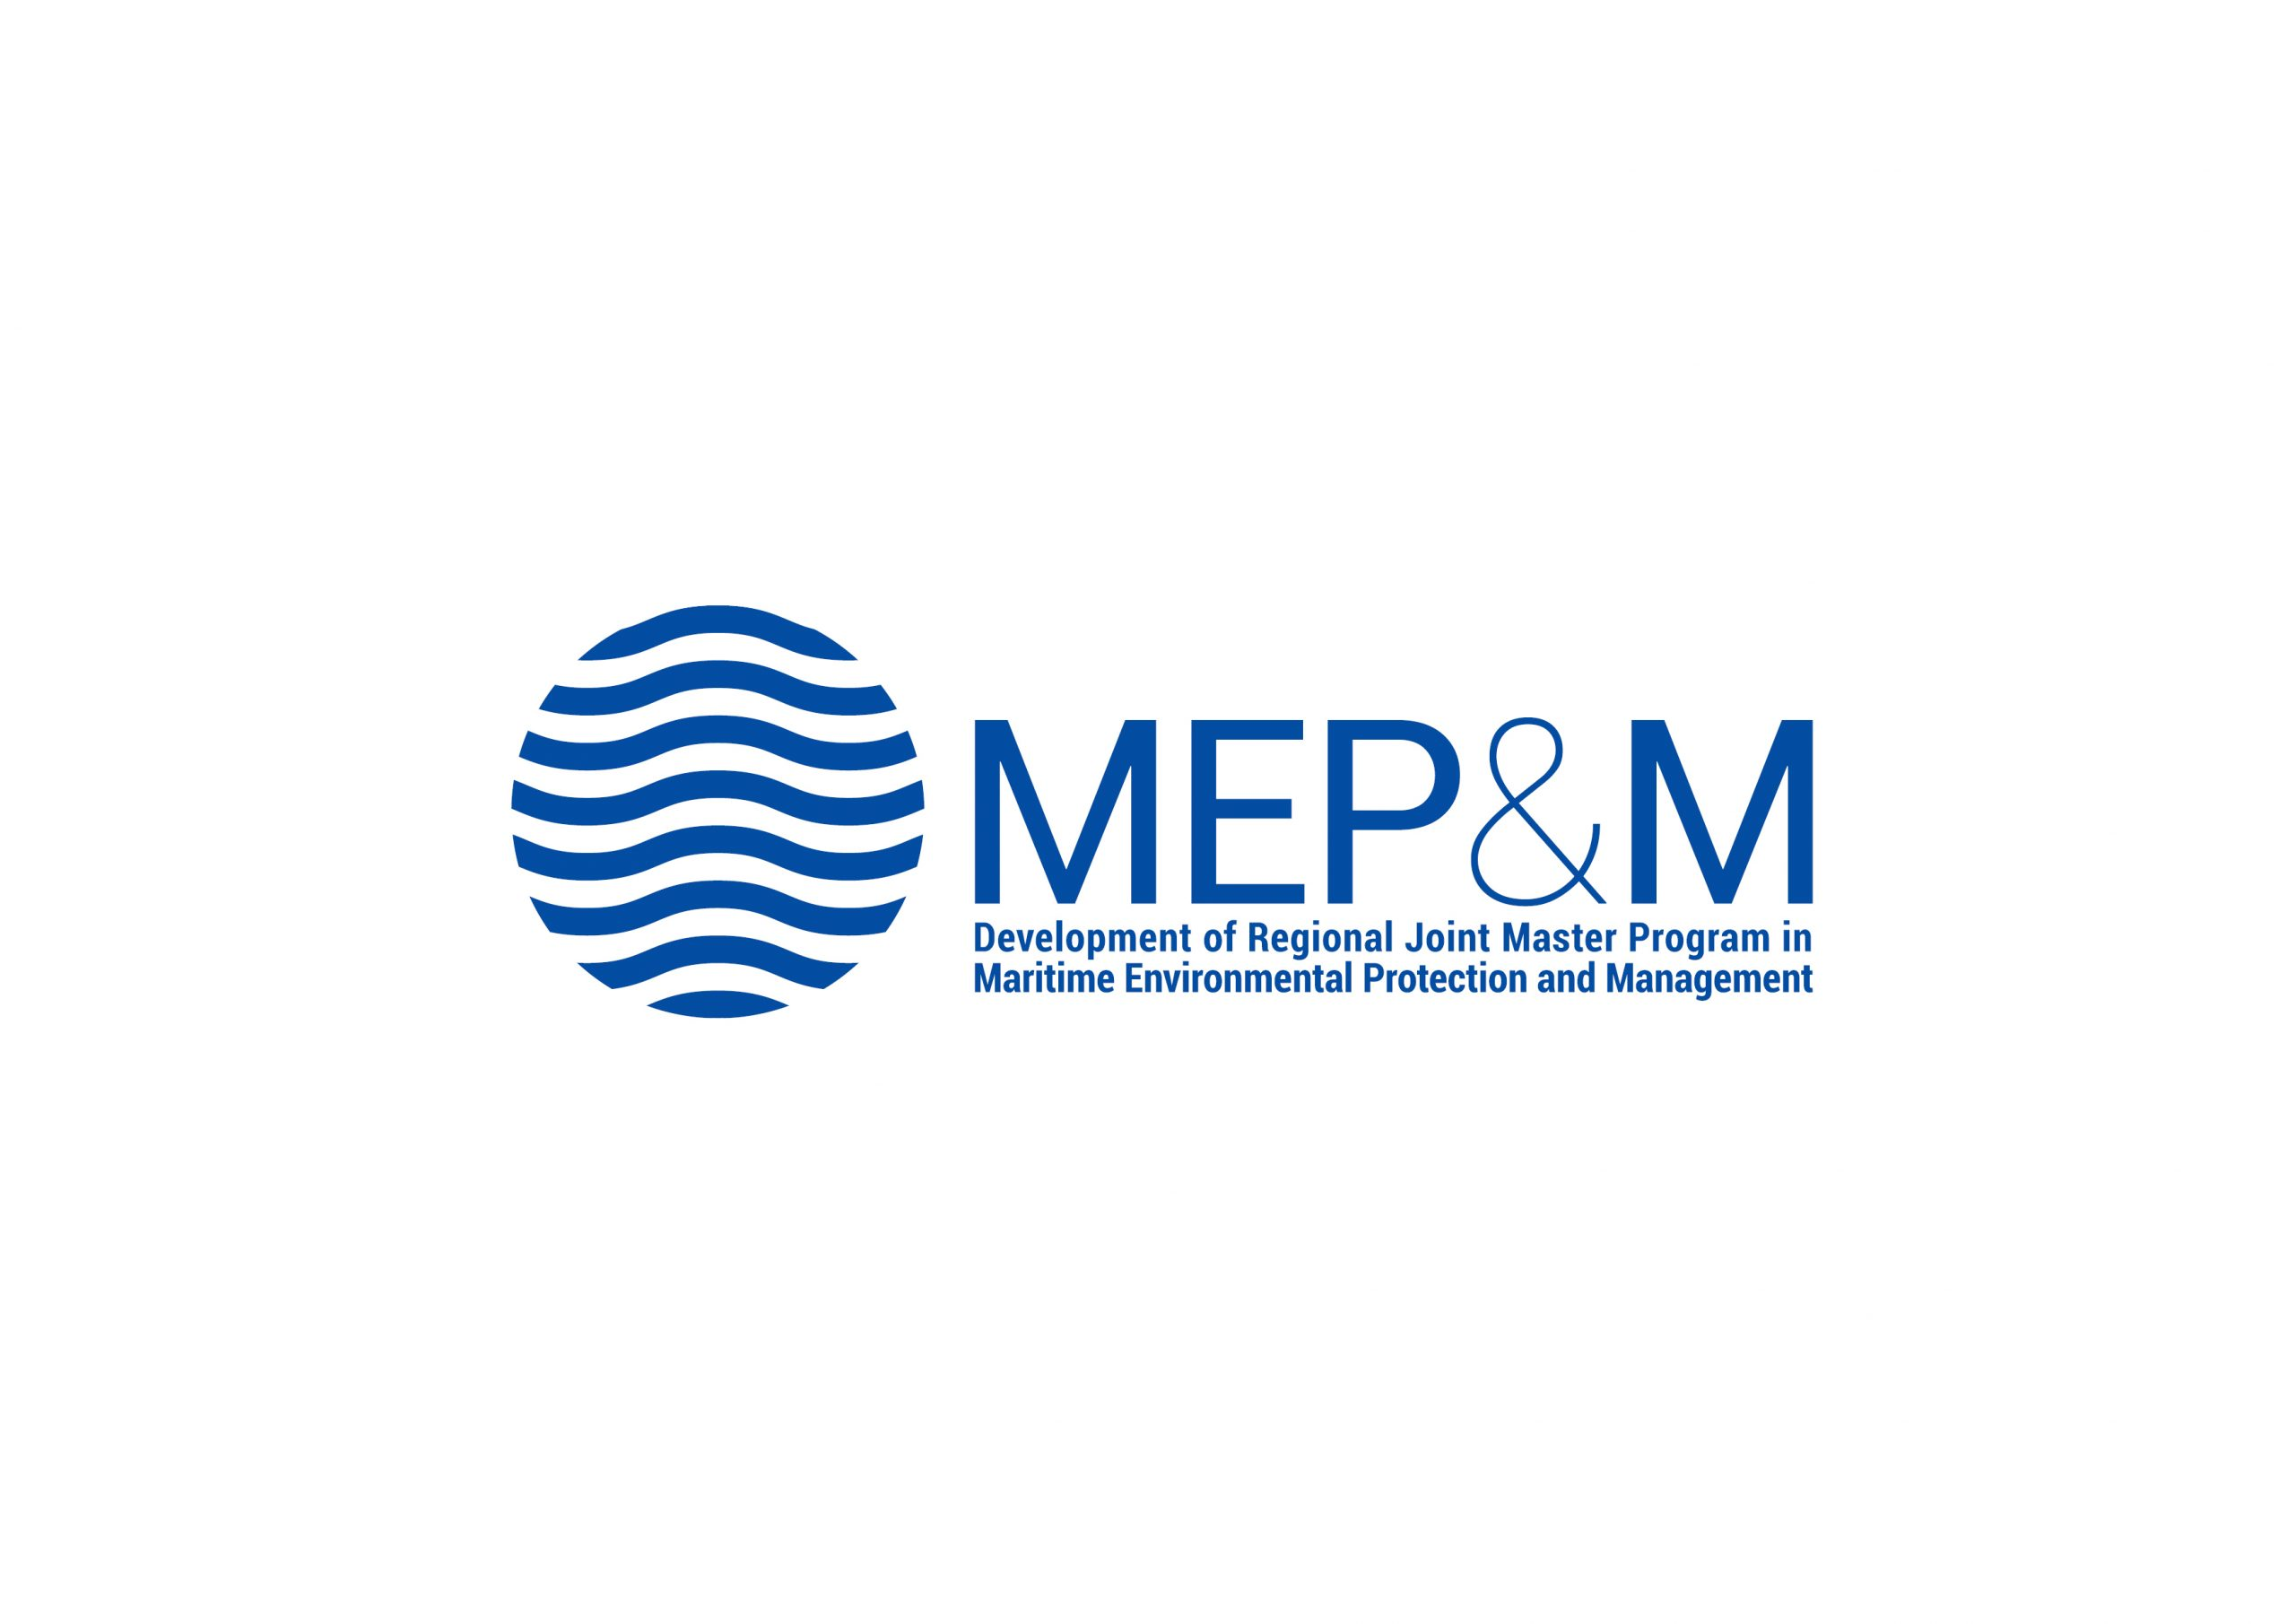 Development of Regional Joint Master Program in Maritime Environmental Protection and Management